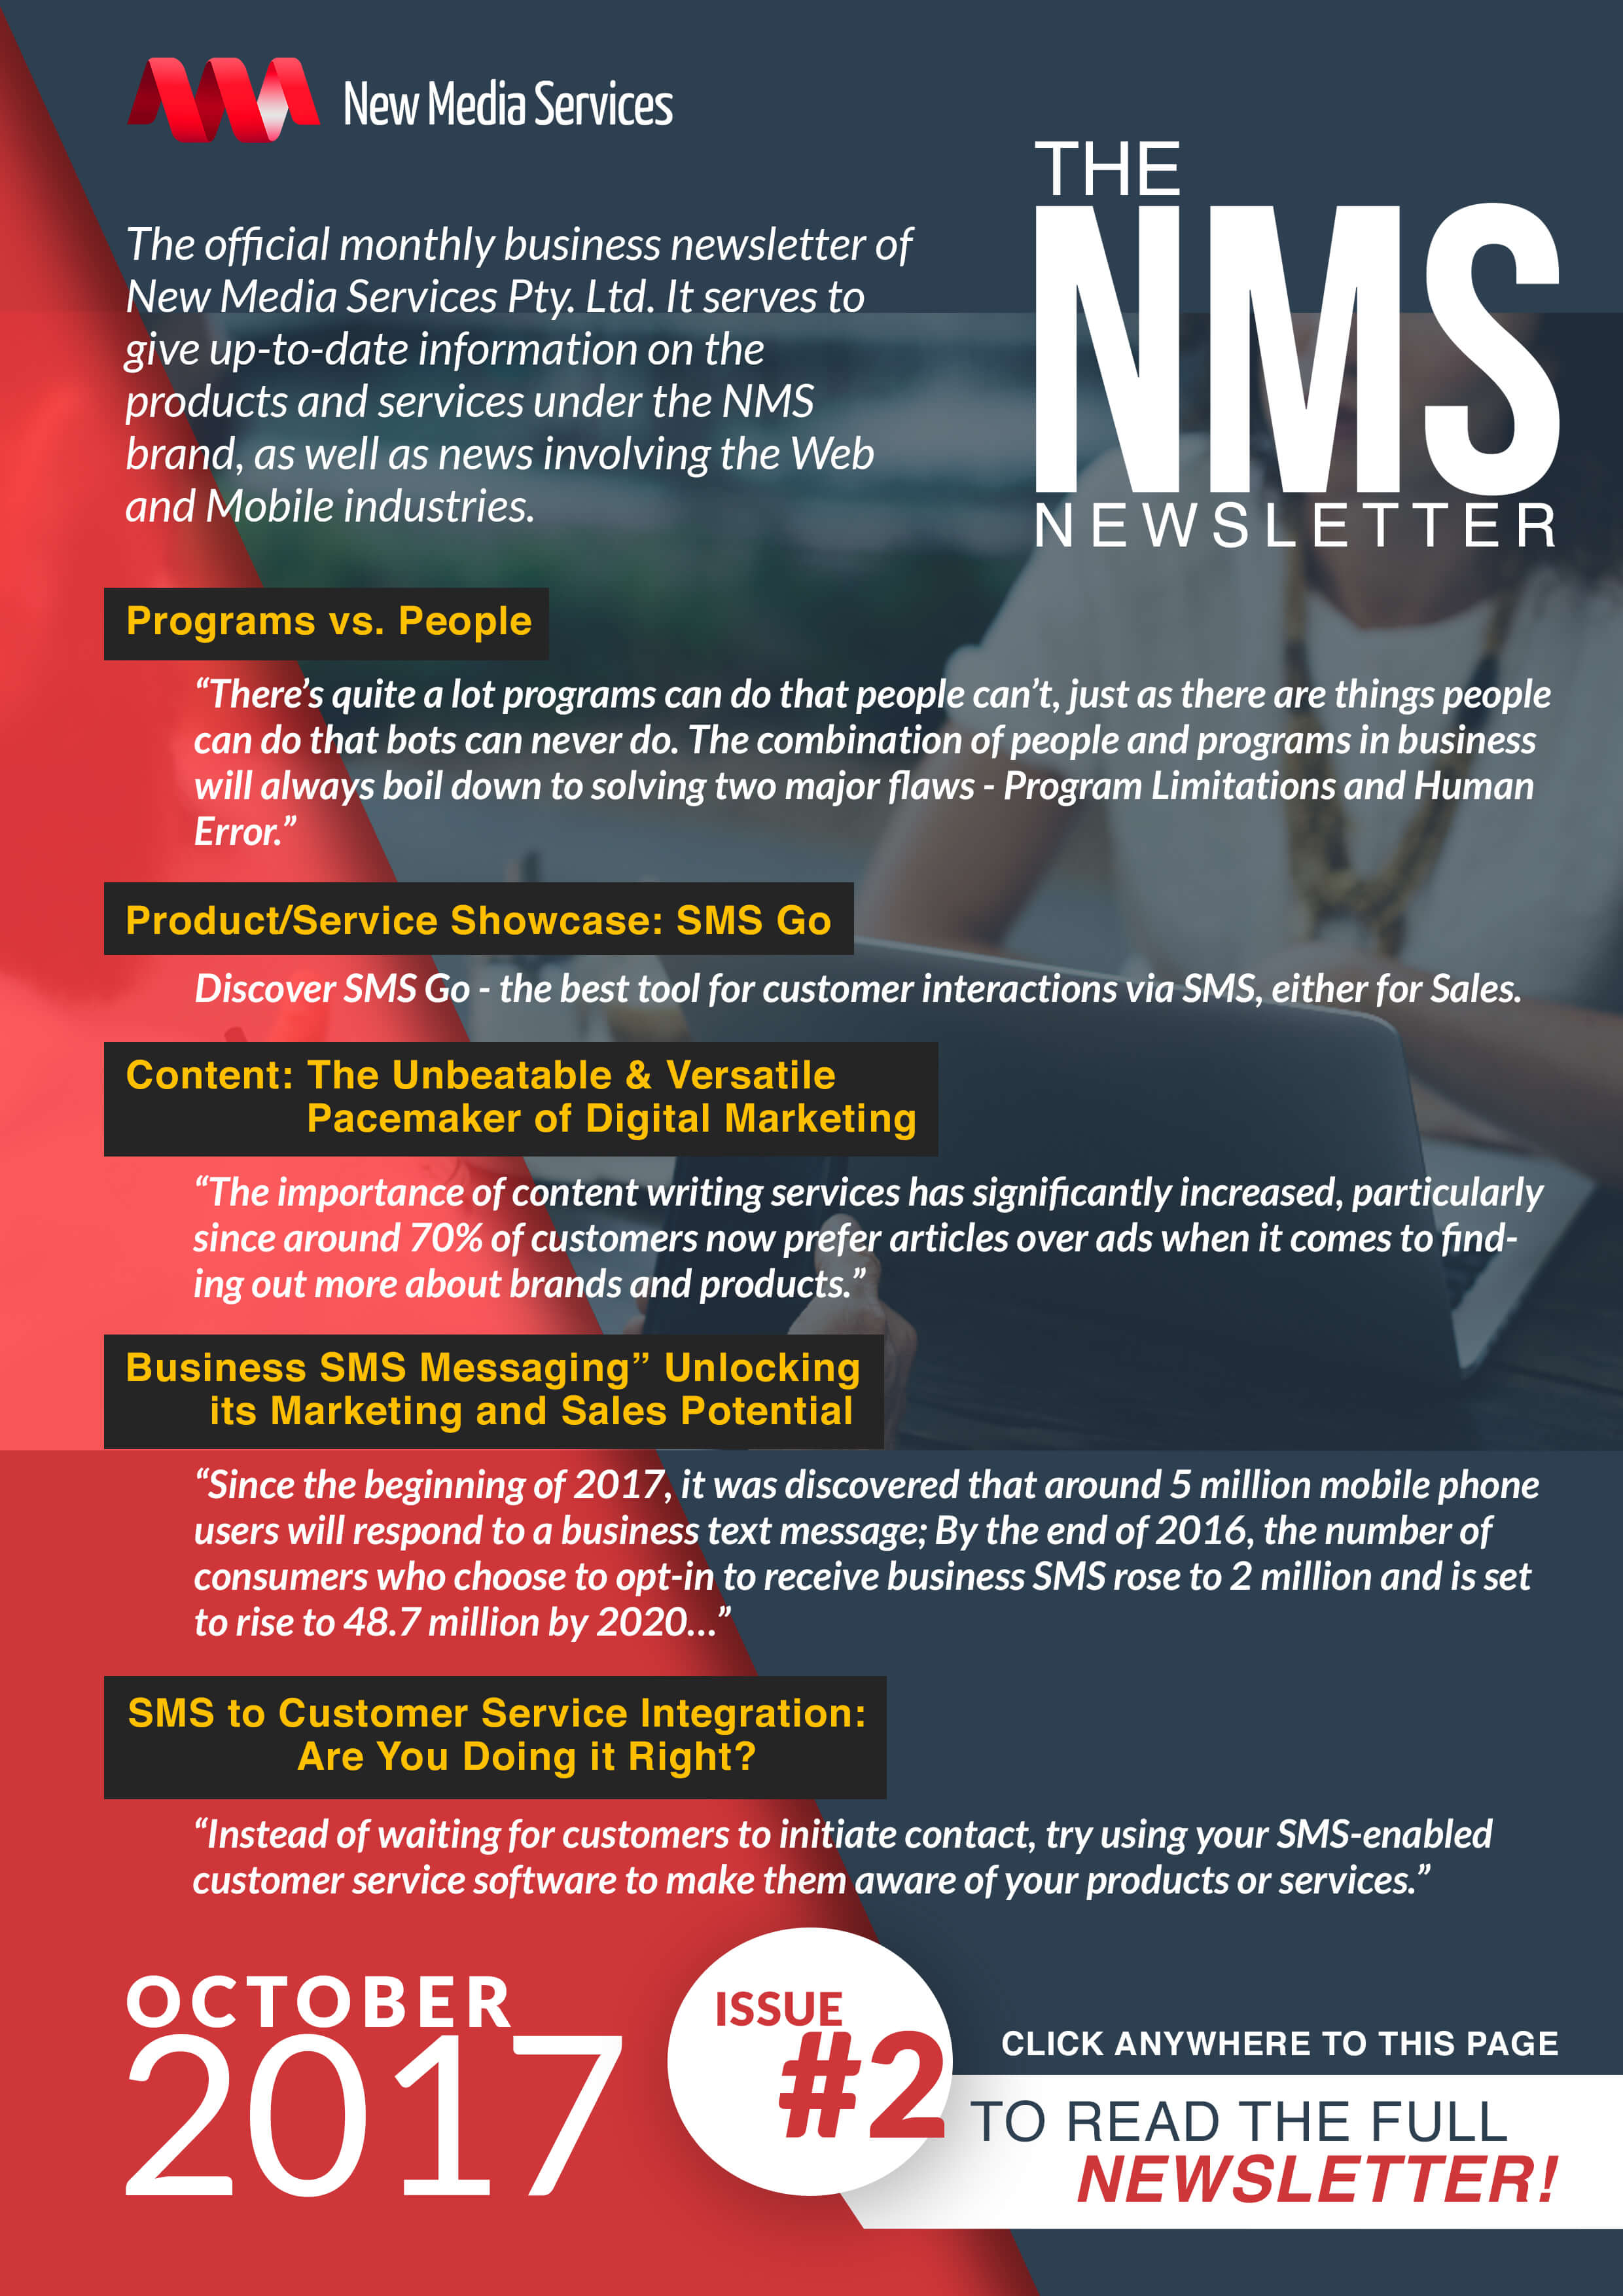 NMS Newsletter banner for October 2017